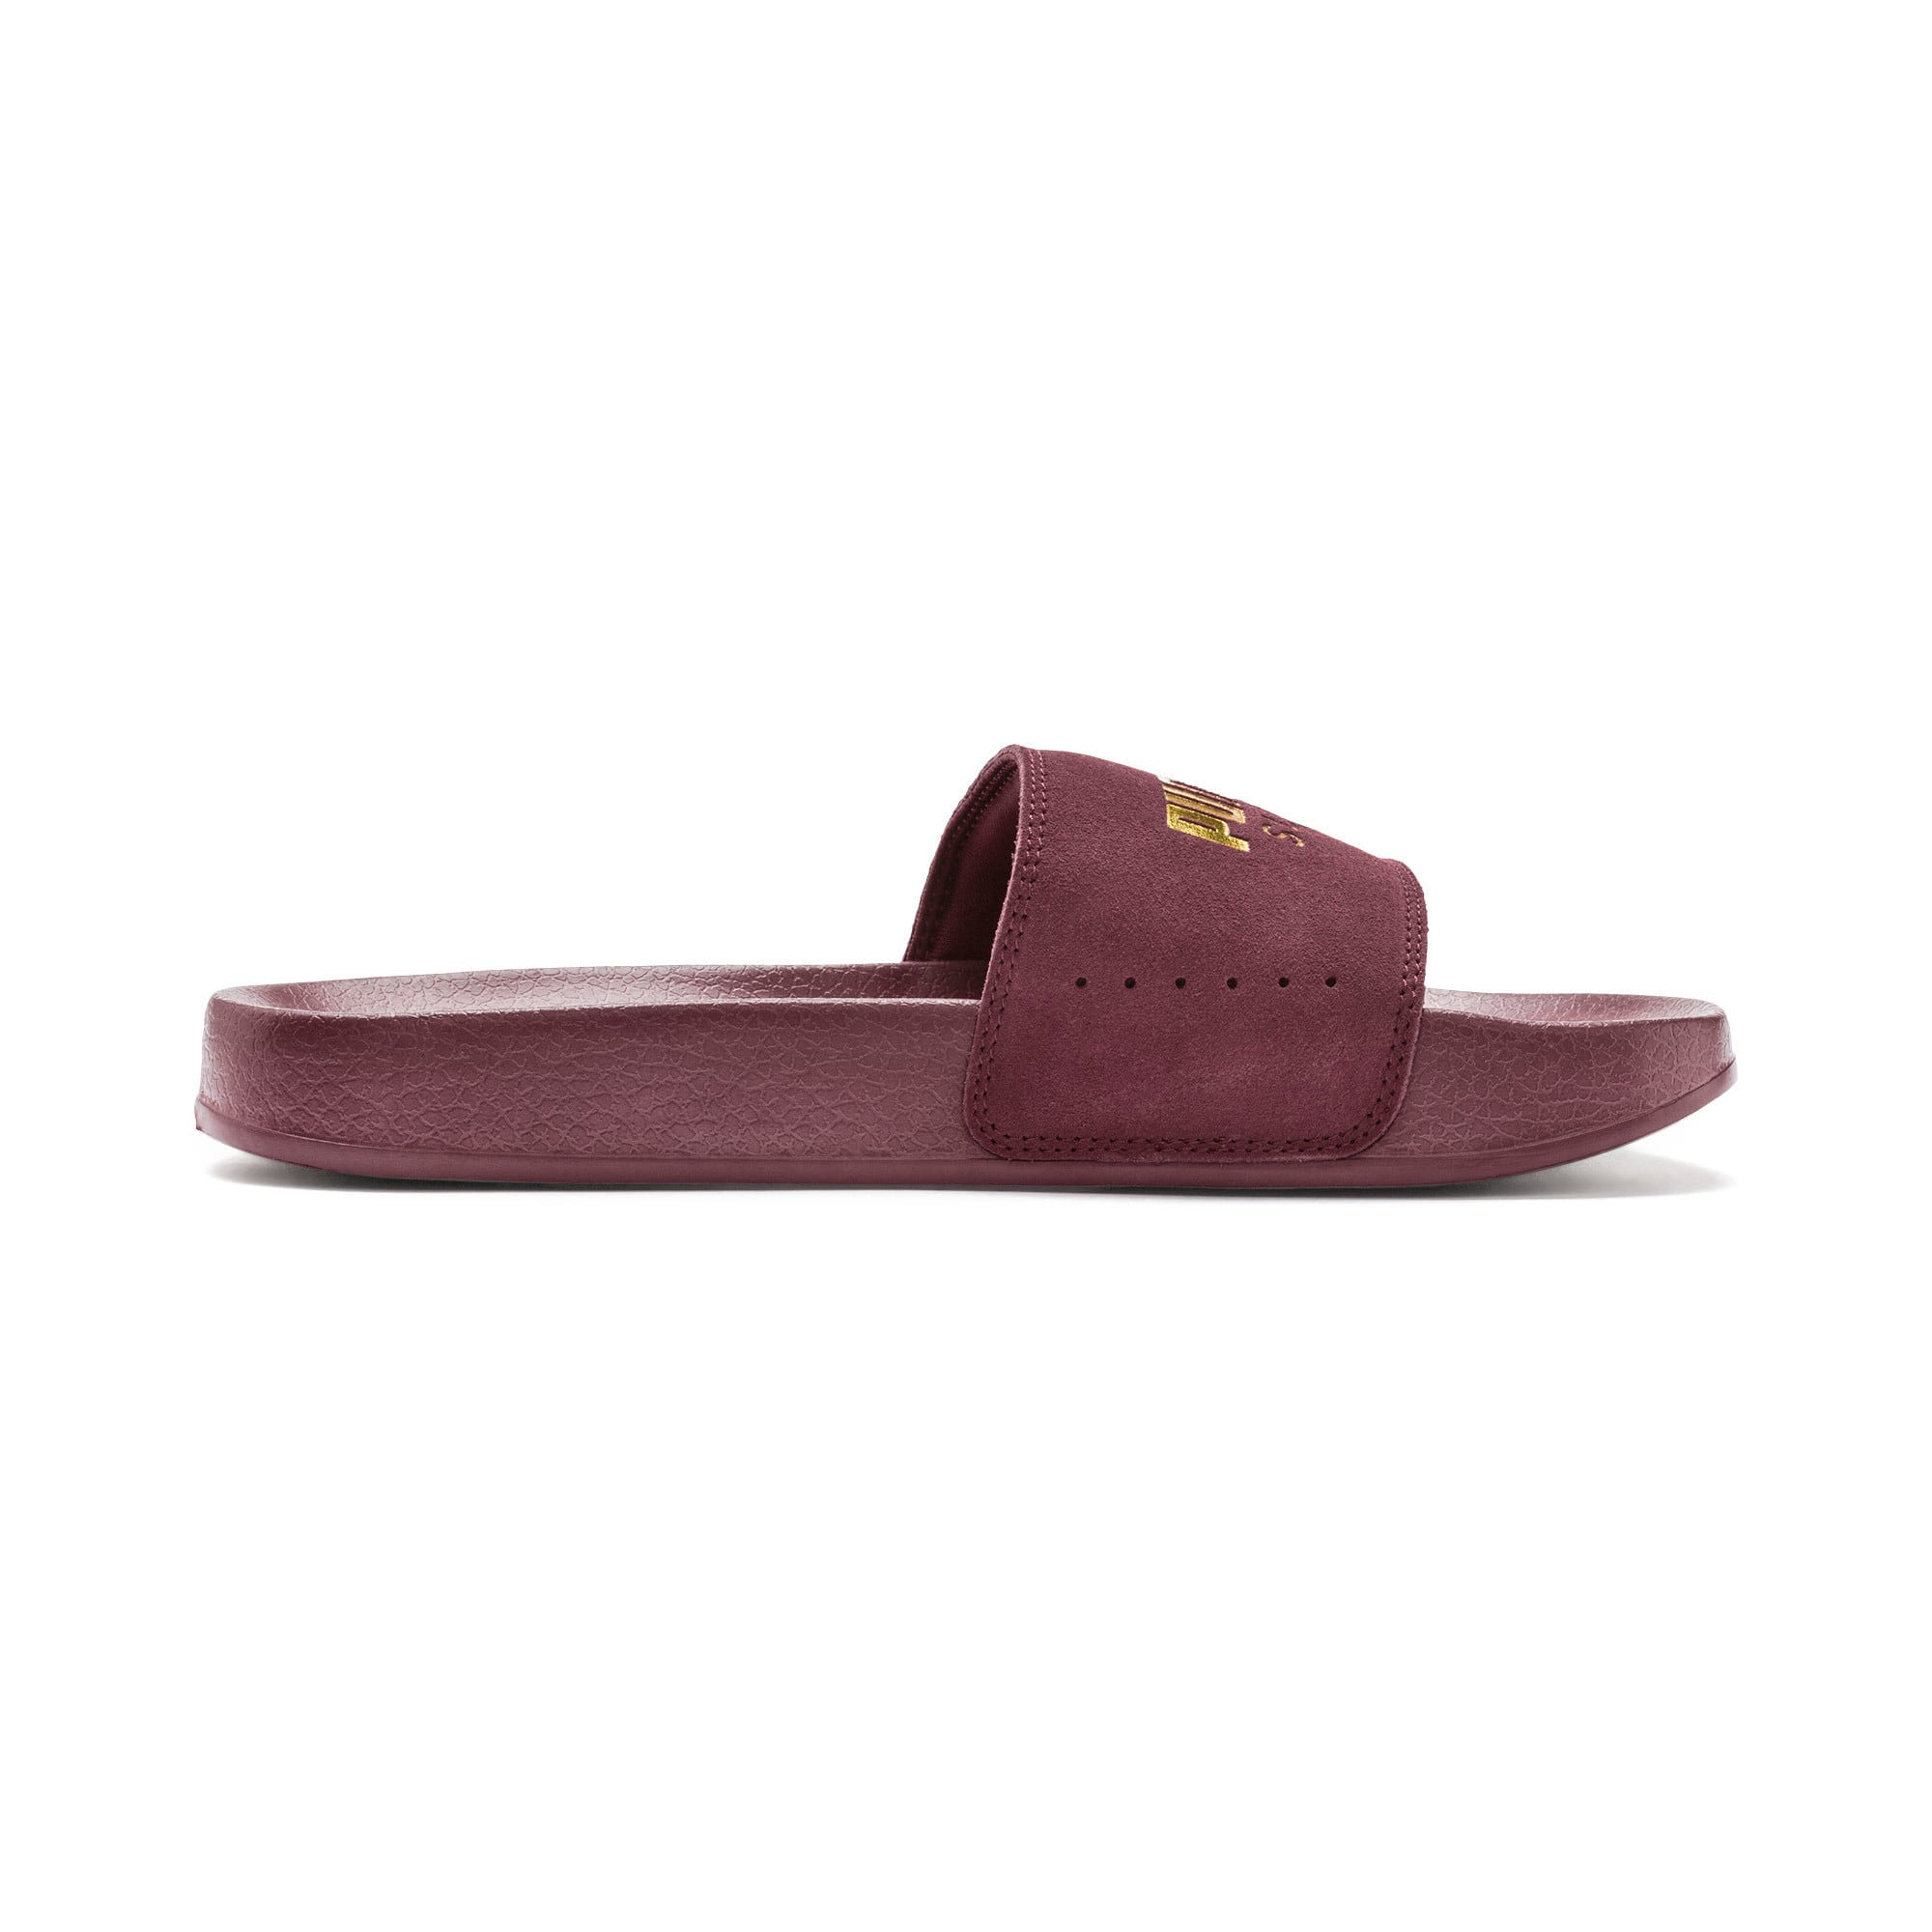 Suede Leadcat, Vineyard Wine-Puma Team Gold, large